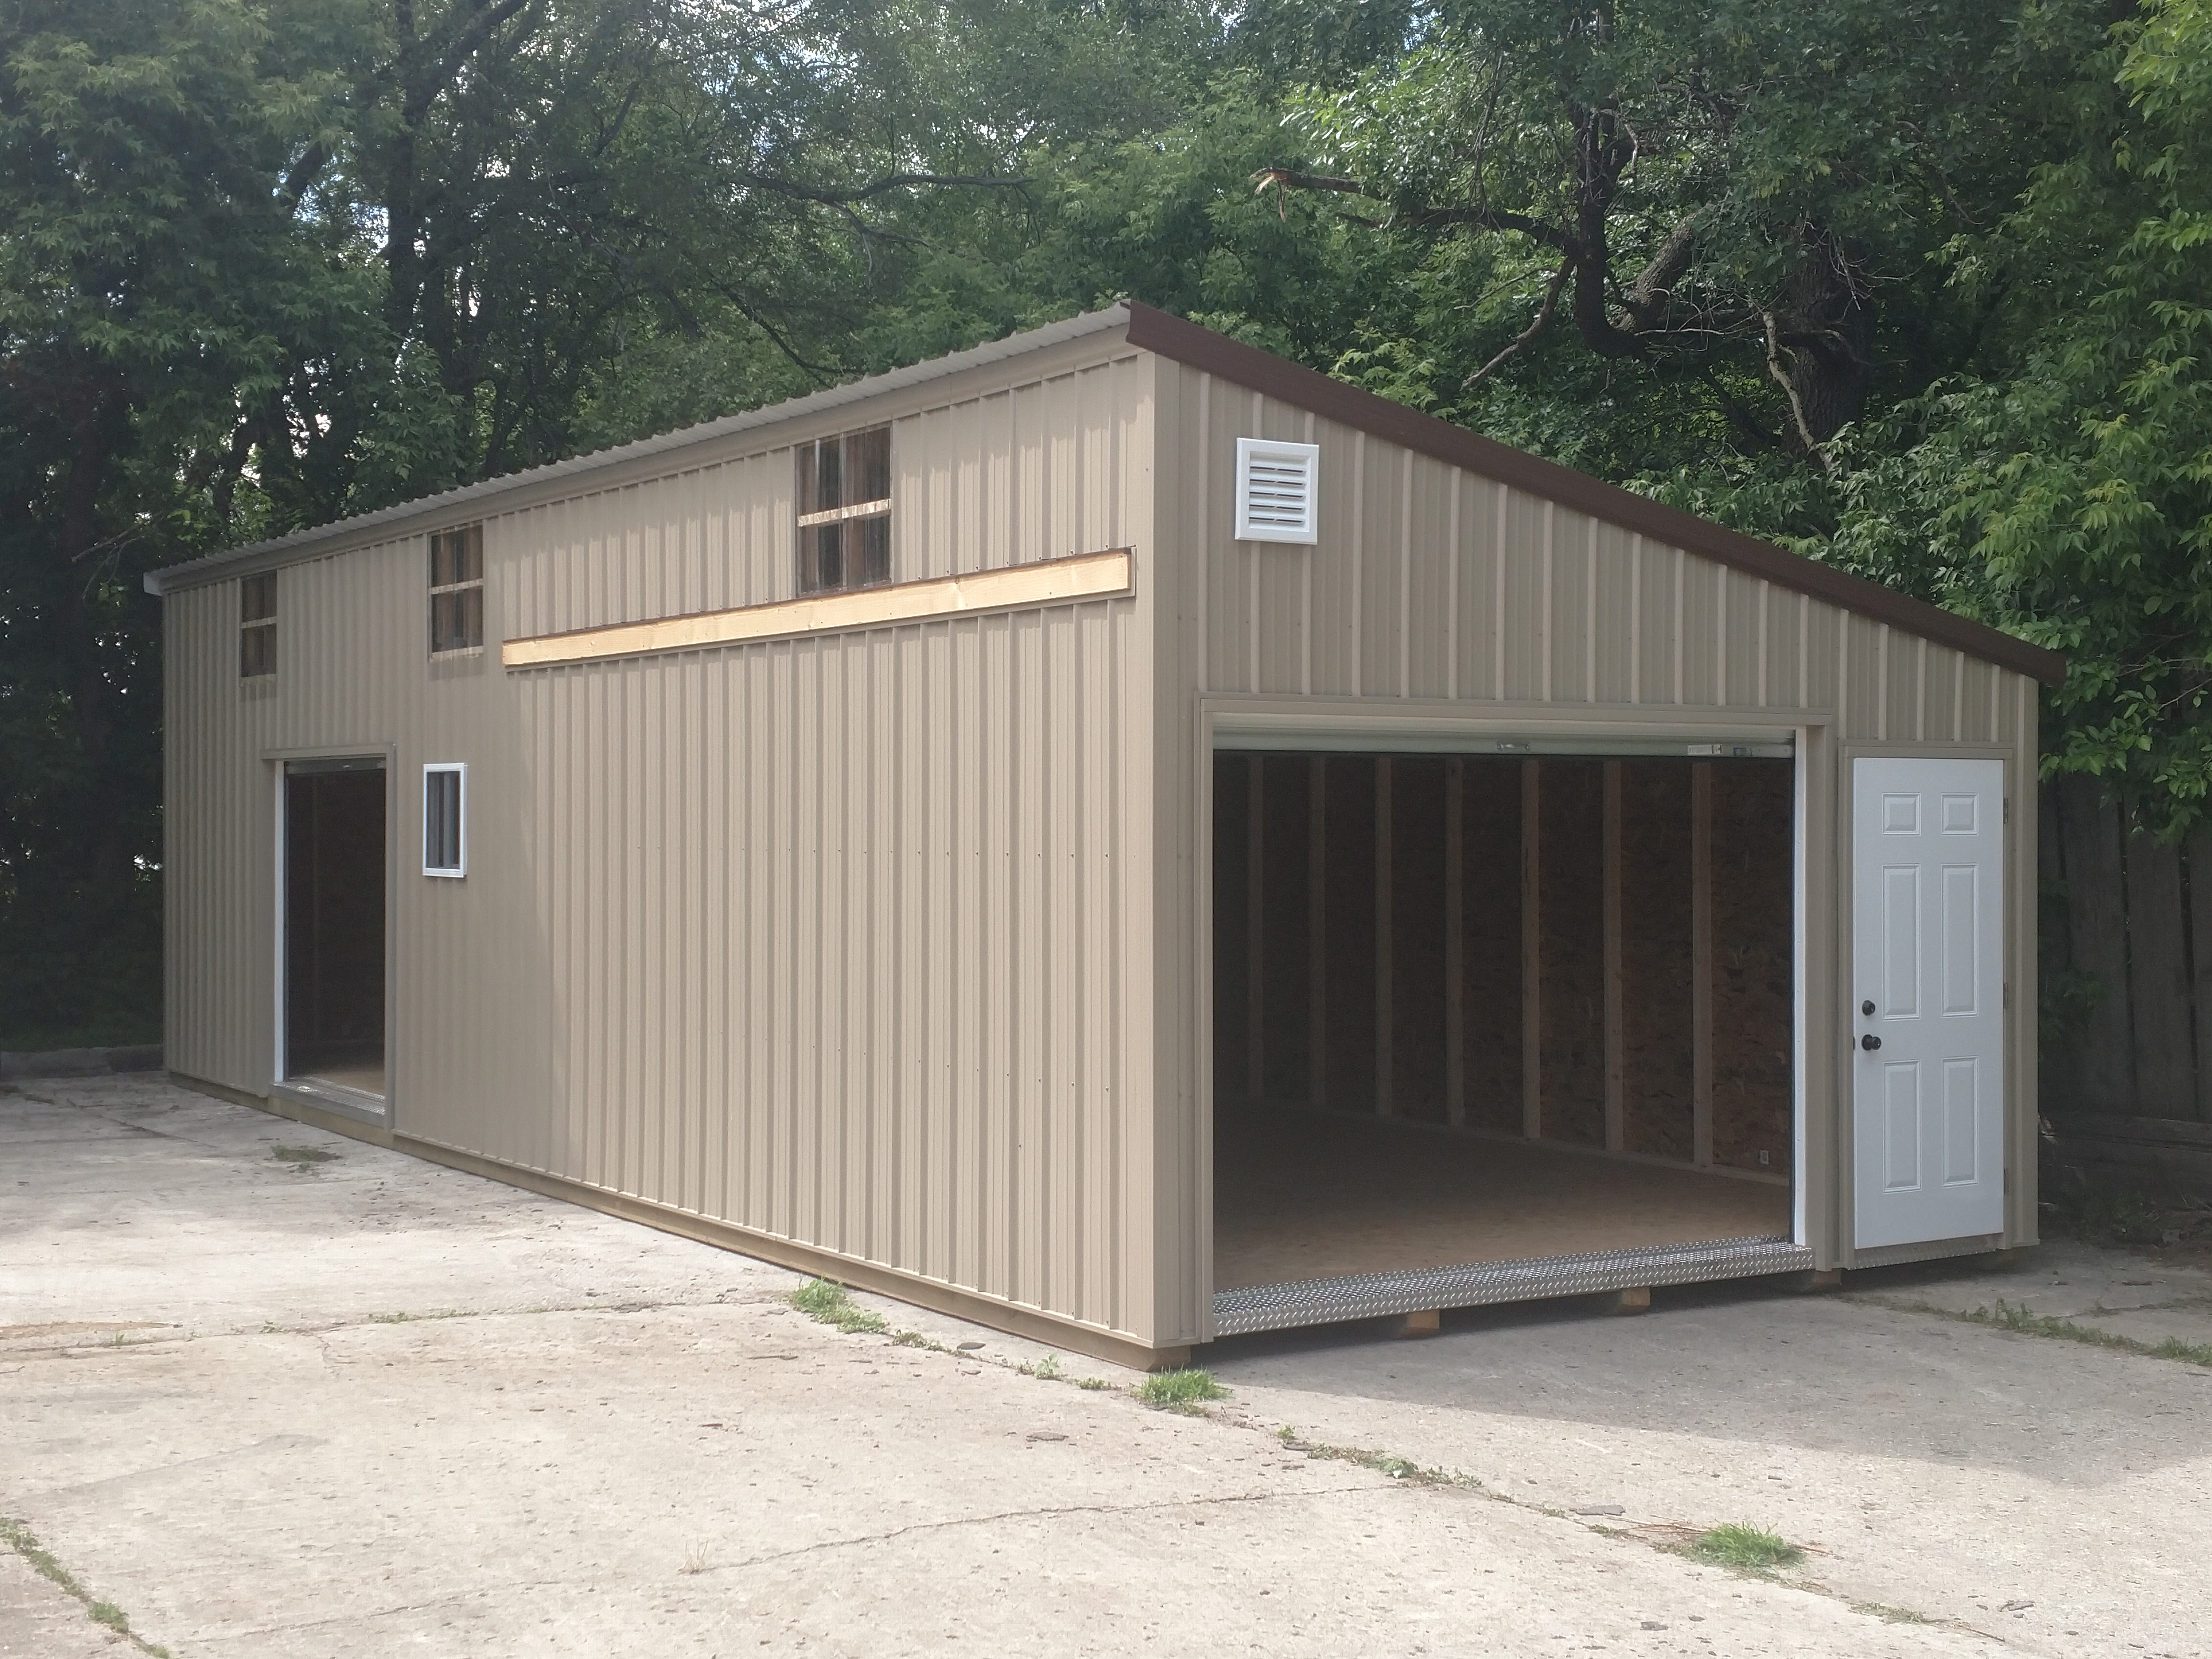 15x42 Building from Swede's Buildings, Sanborn MN